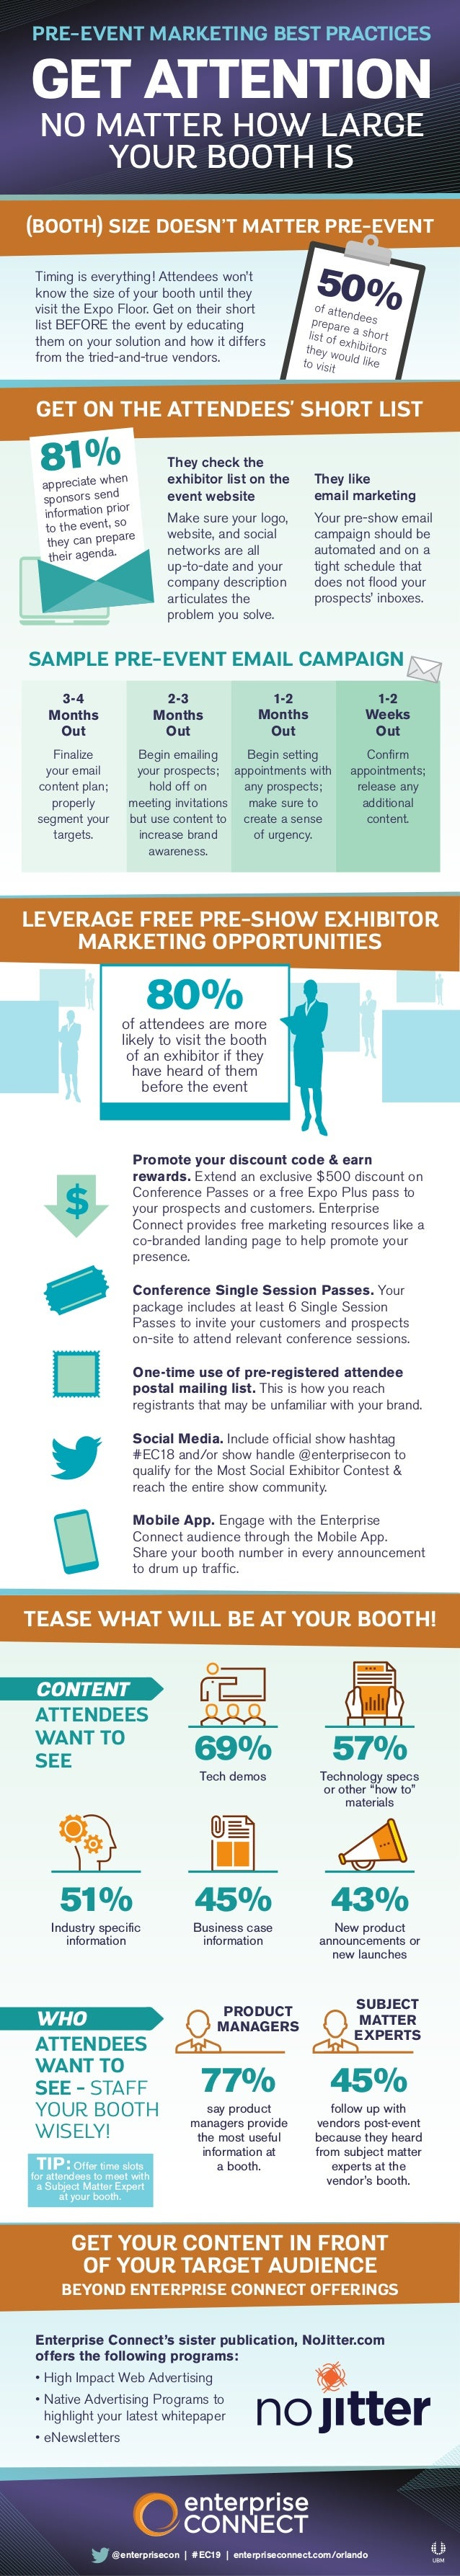 (BOOTH) SIZE DOESN'T MATTER PRE-EVENT PRE-EVENT MARKETING BEST PRACTICES NO MATTER HOW LARGE YOUR BOOTH IS Enterprise Conn...